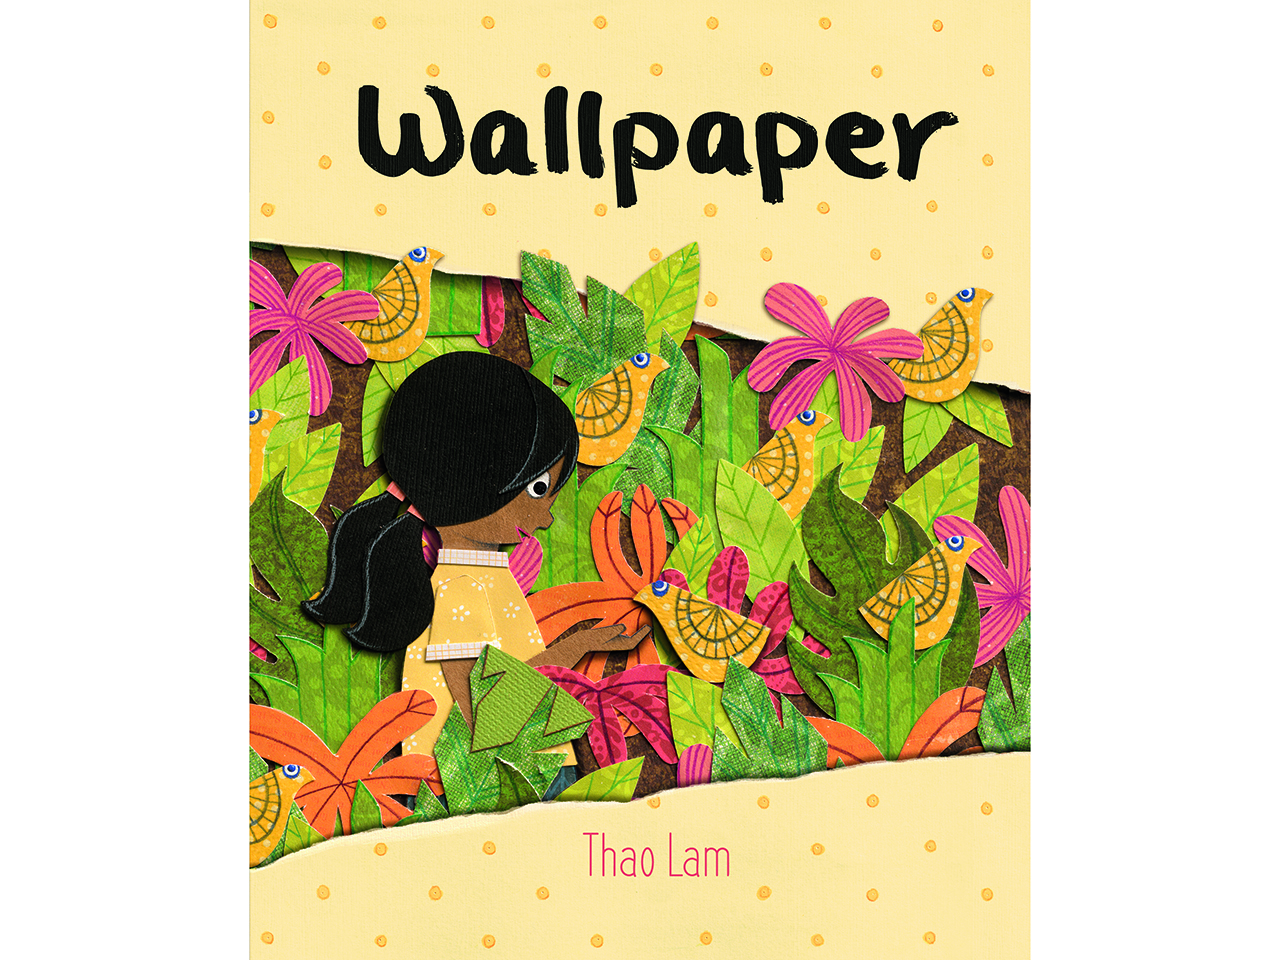 Wallpaper book cover